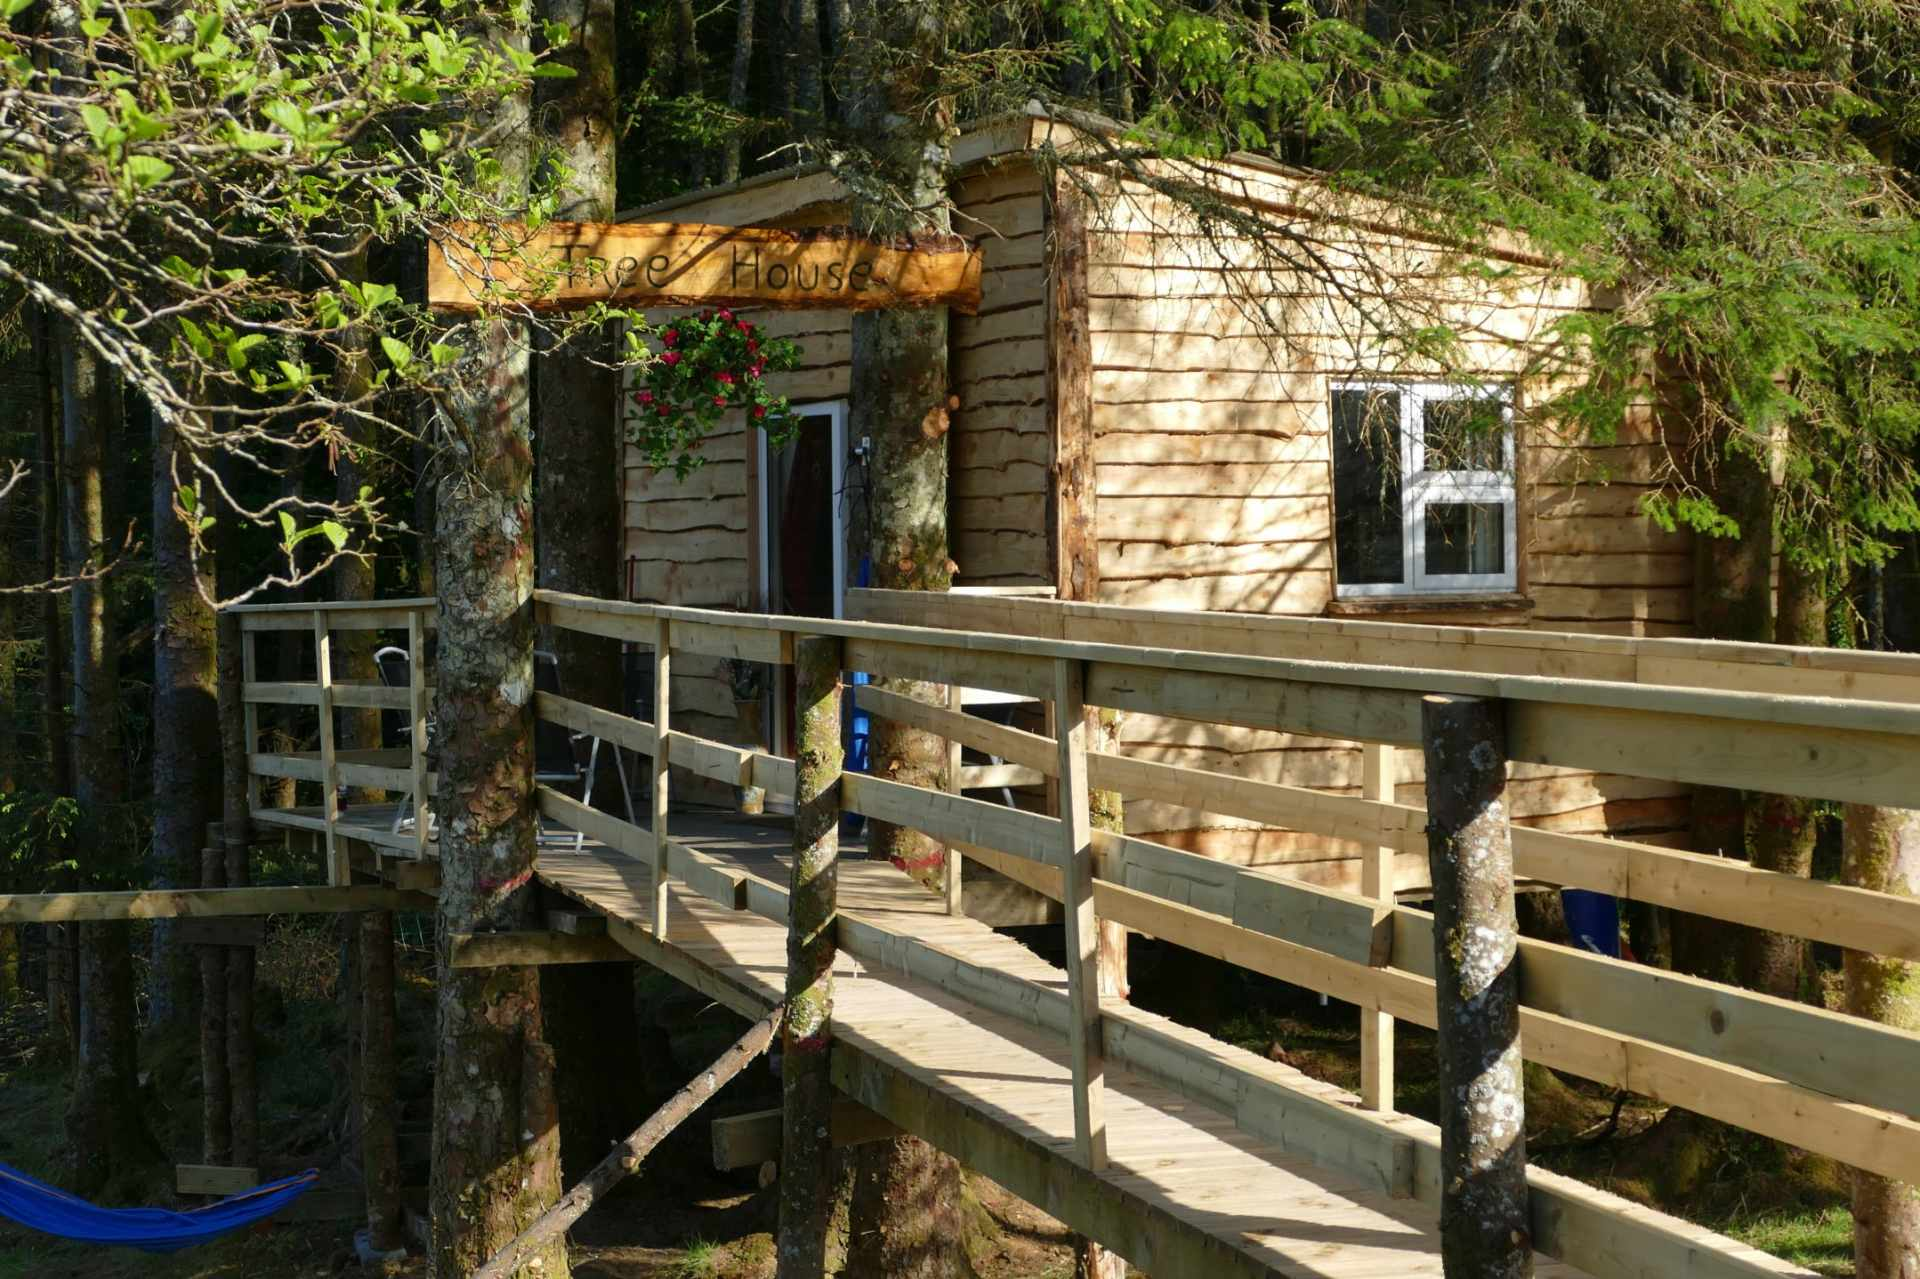 wooden-bridge-leading-up-to-ox-mountain-treehouse-in-forest-treehouses-ireland